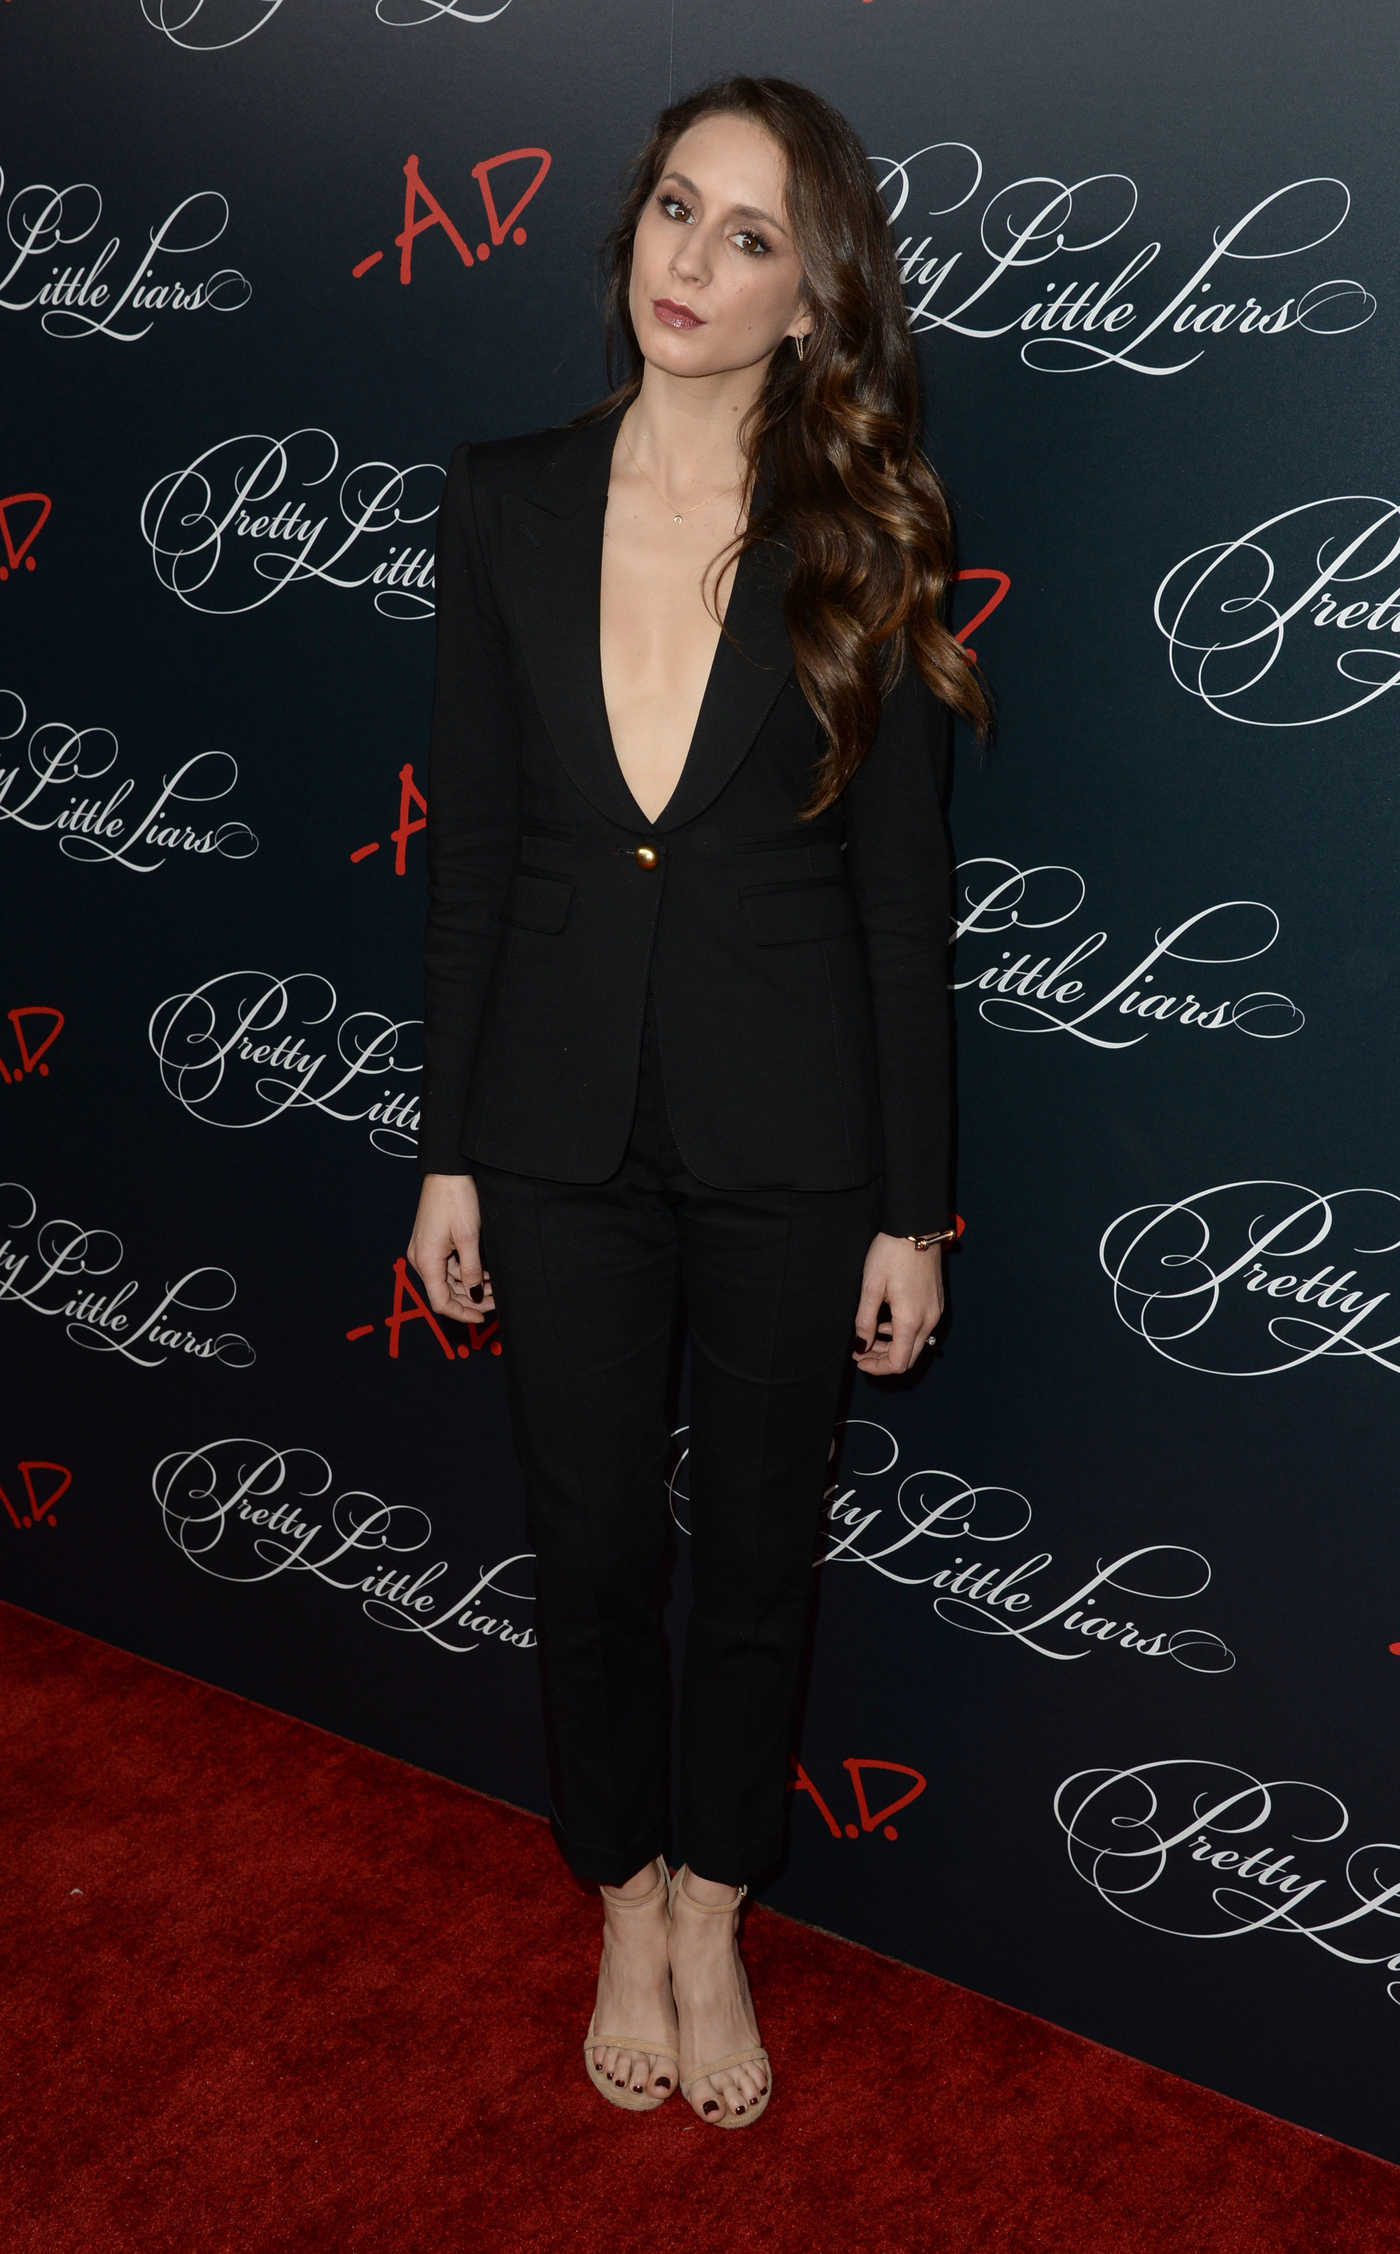 Troian Bellisario Celebrates Final Season of Pretty Little Liars at Siren Studios in Hollywood 10/29/2016